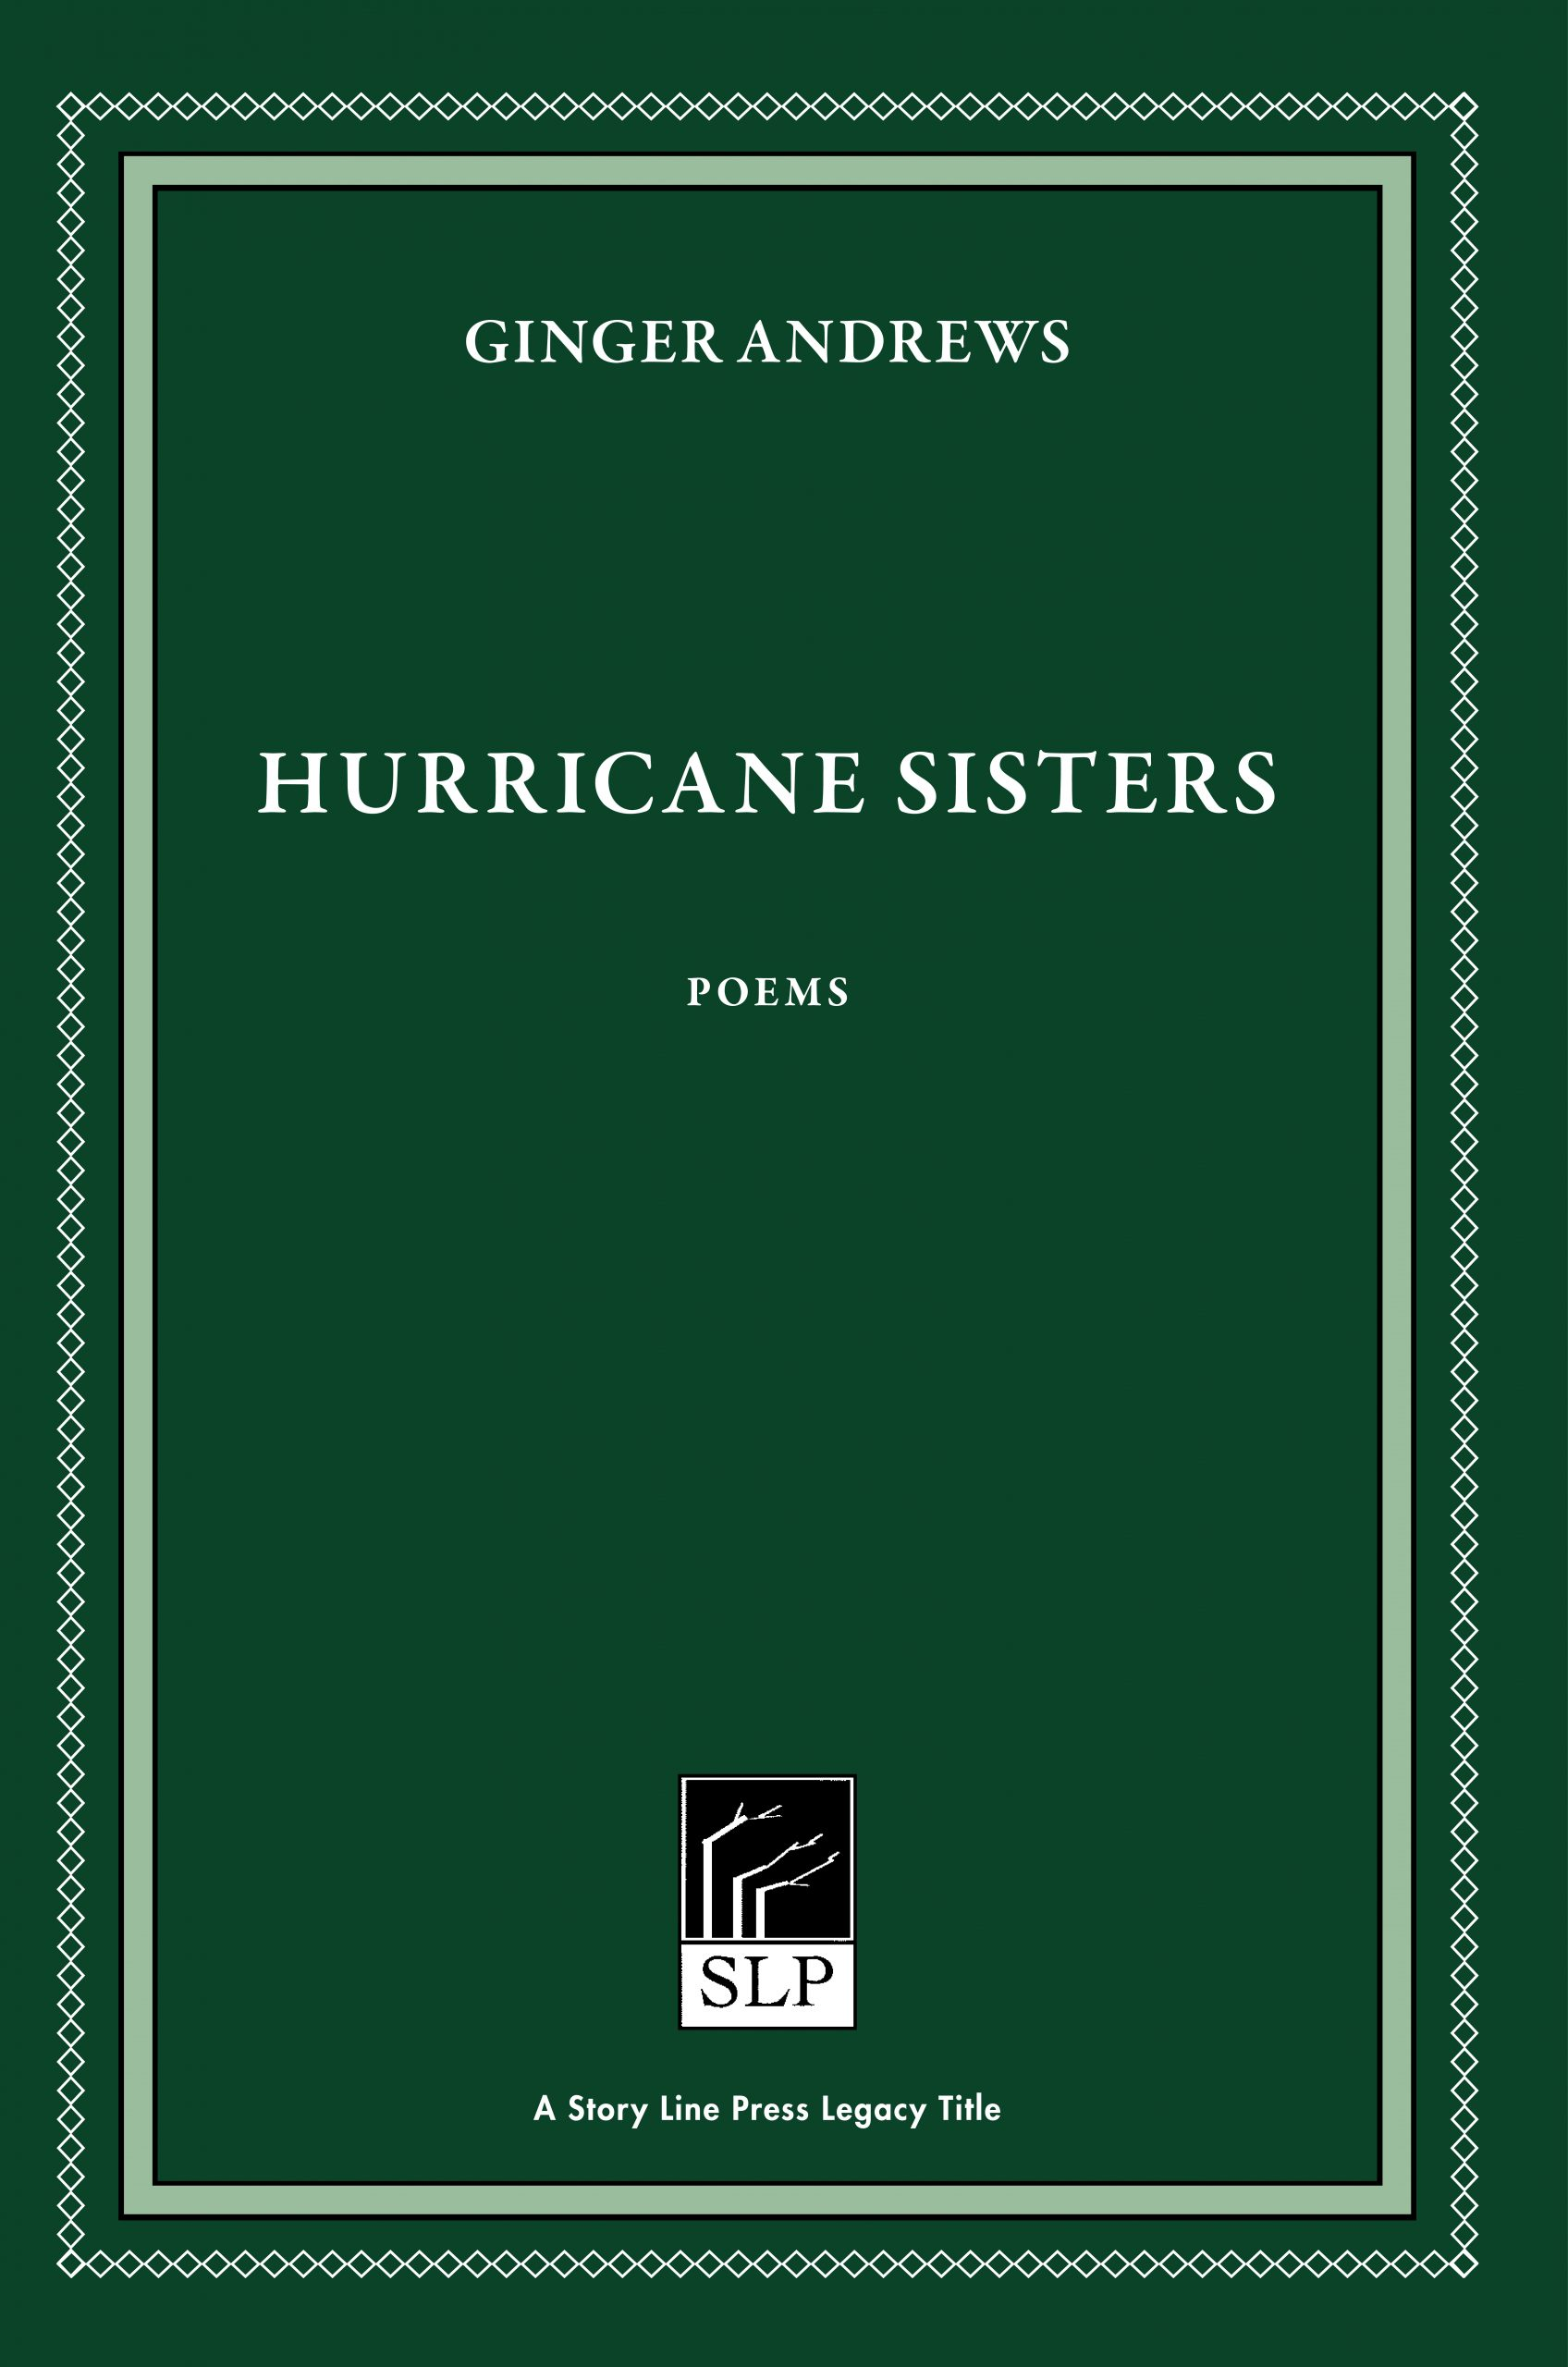 Story Line Press legacy tittle, Ginger Andrews Hurricane Sisters, white script text against emerald green background.